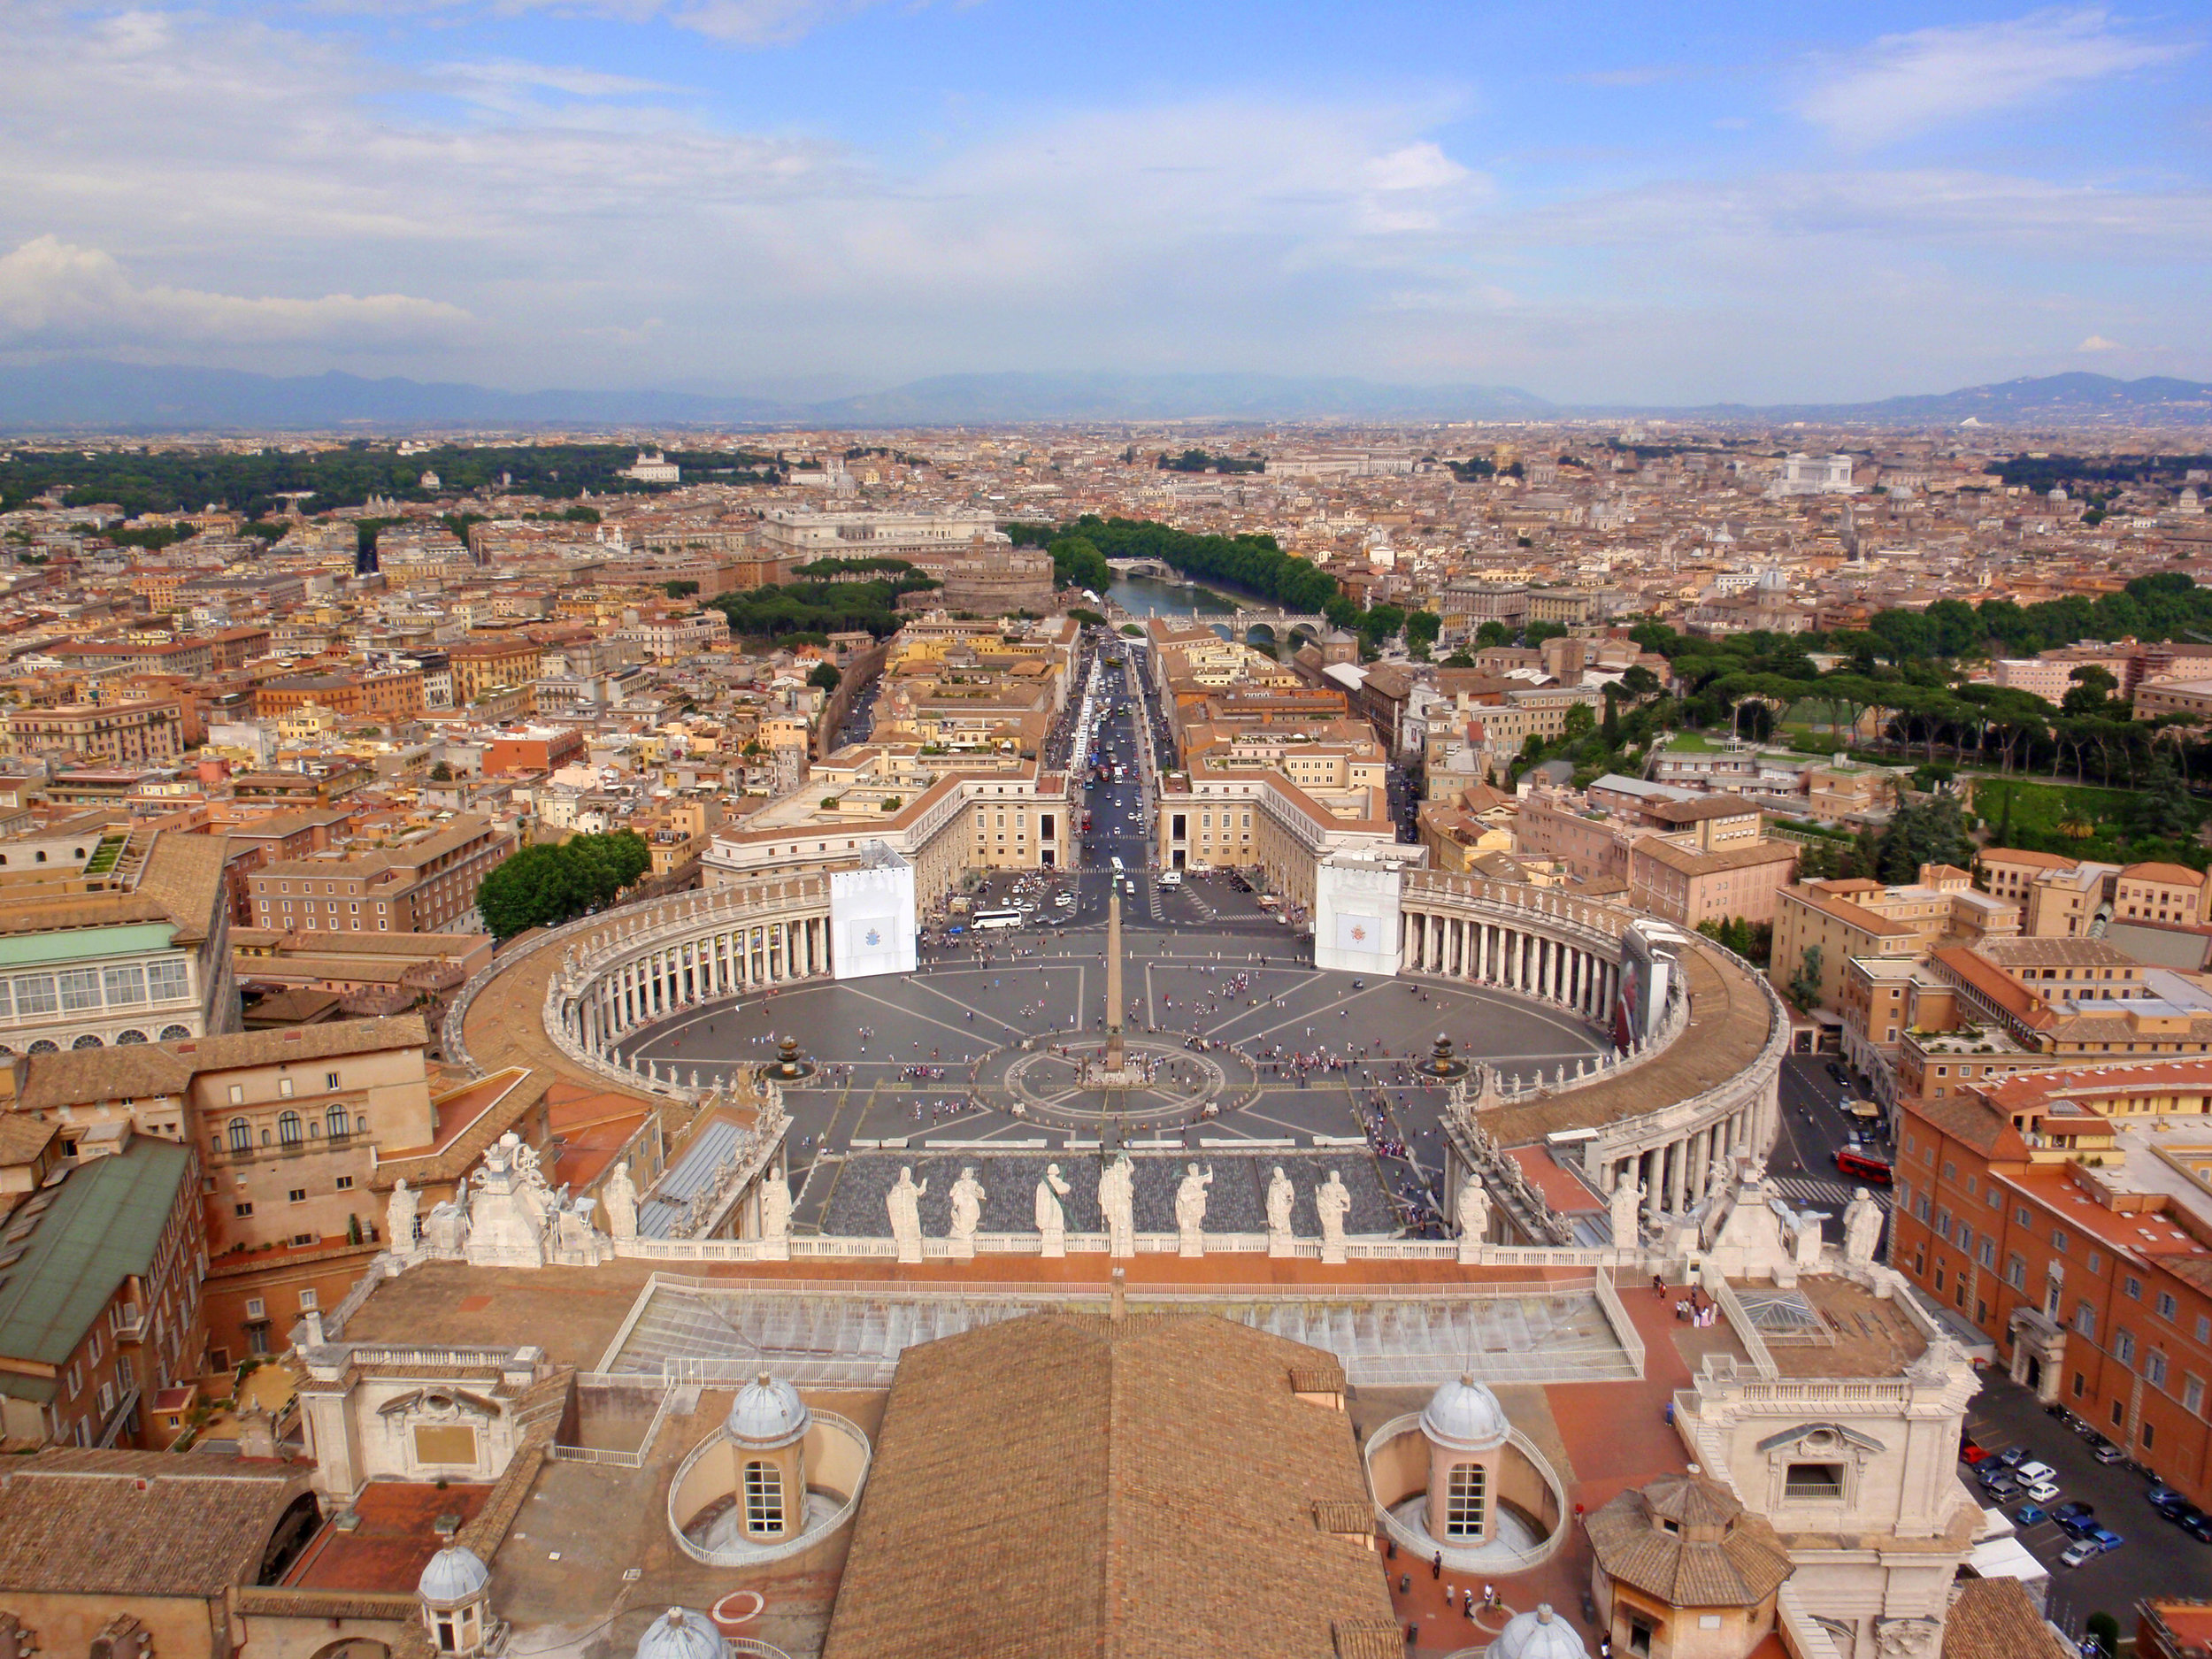 View from St. Peter's Basilica, Vatican City